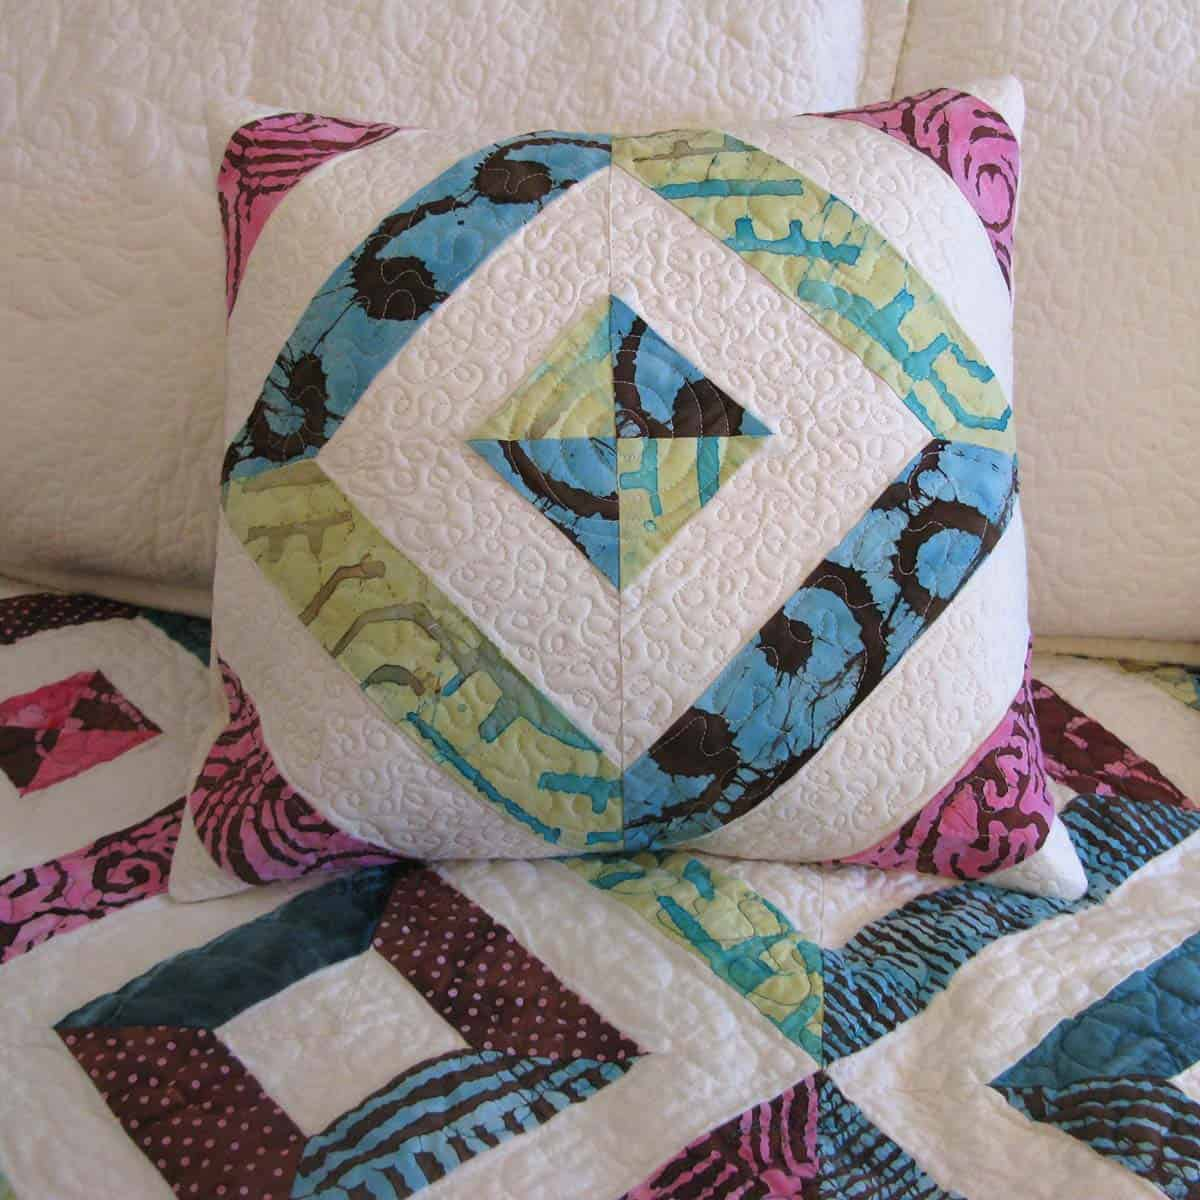 Petunia Strings pillow in other colors